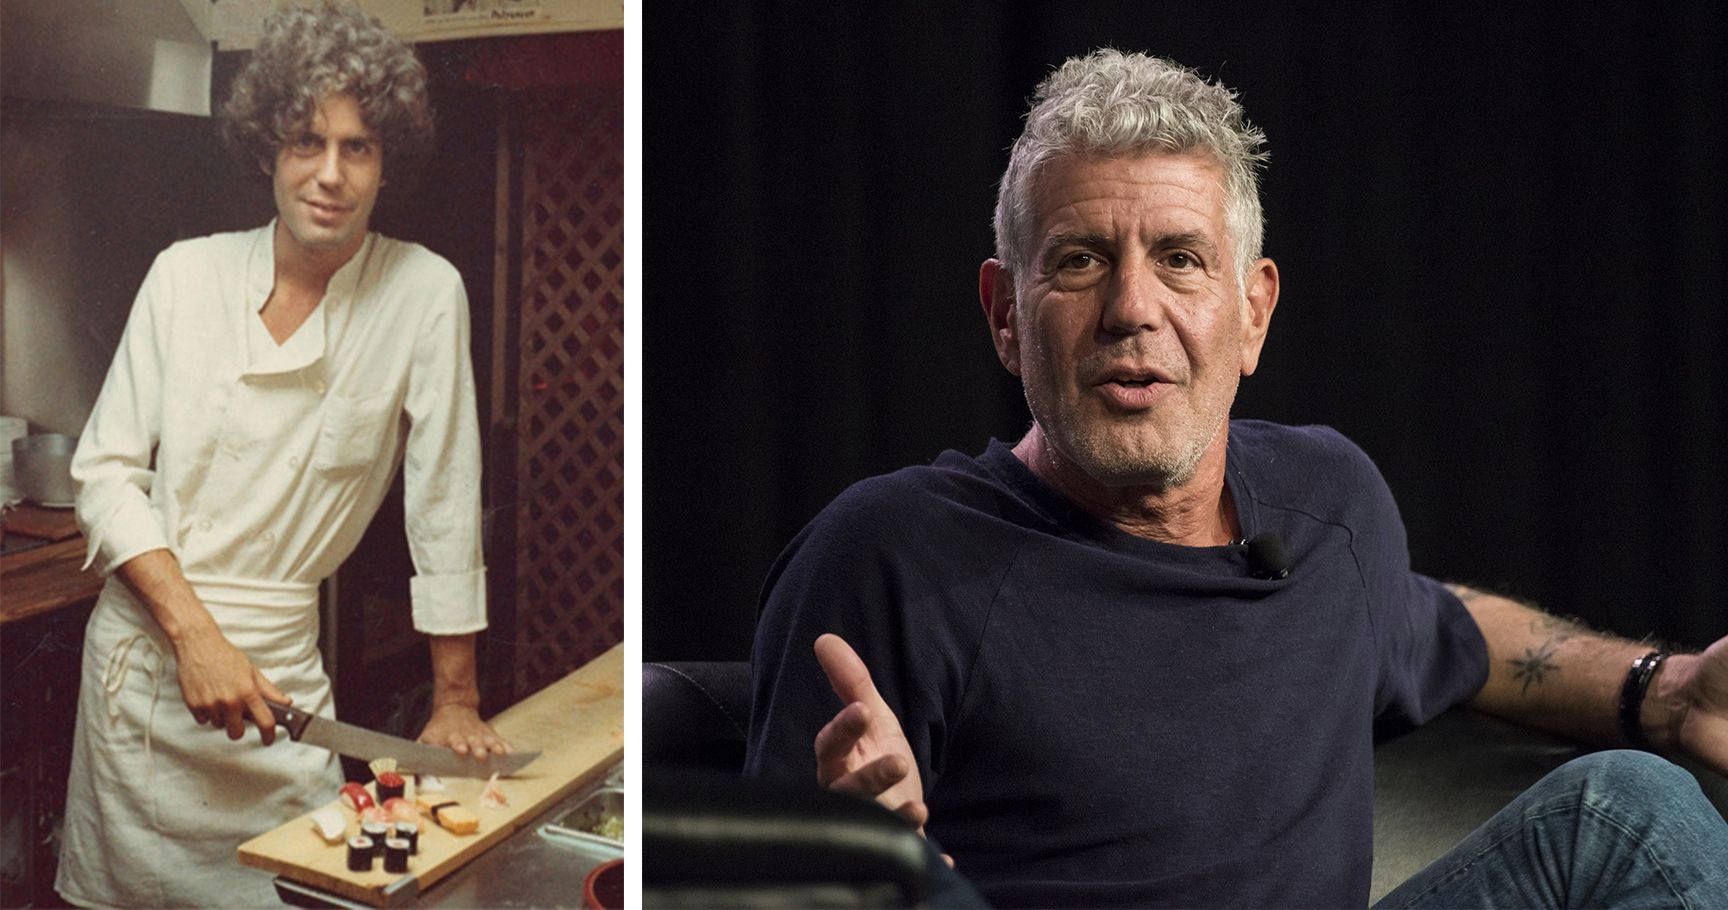 15 Surprising Things You Didn't Know About Anthony Bourdain